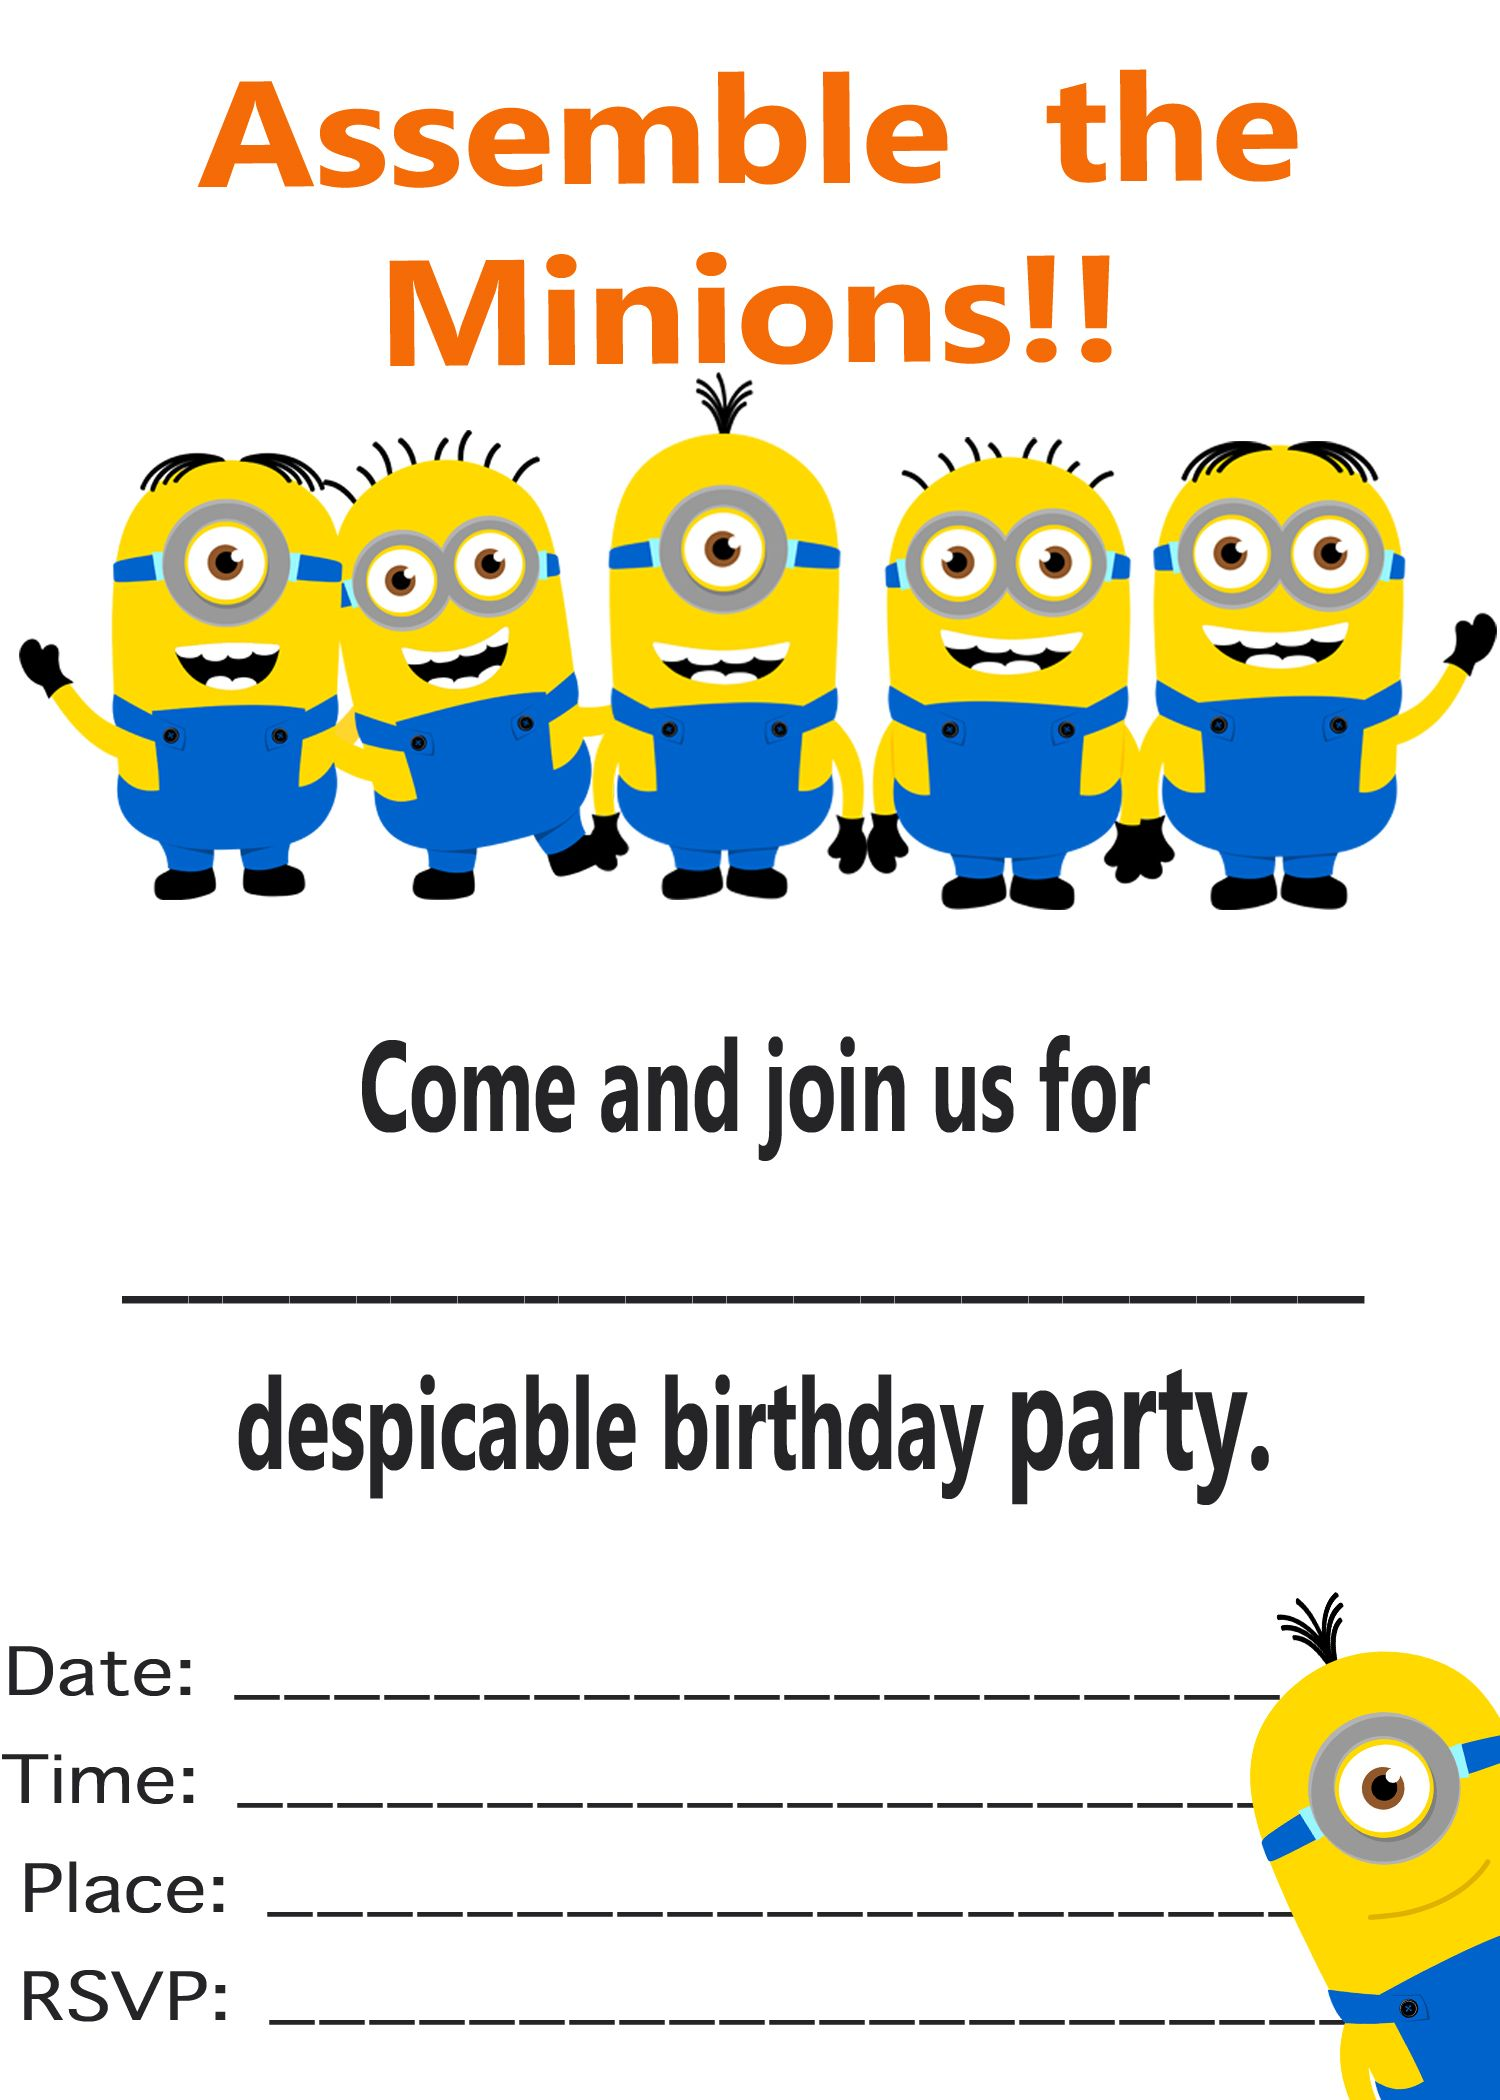 photo about Minions Invitations Printable titled Minion Invitation Printable Templates Minions/Despicable